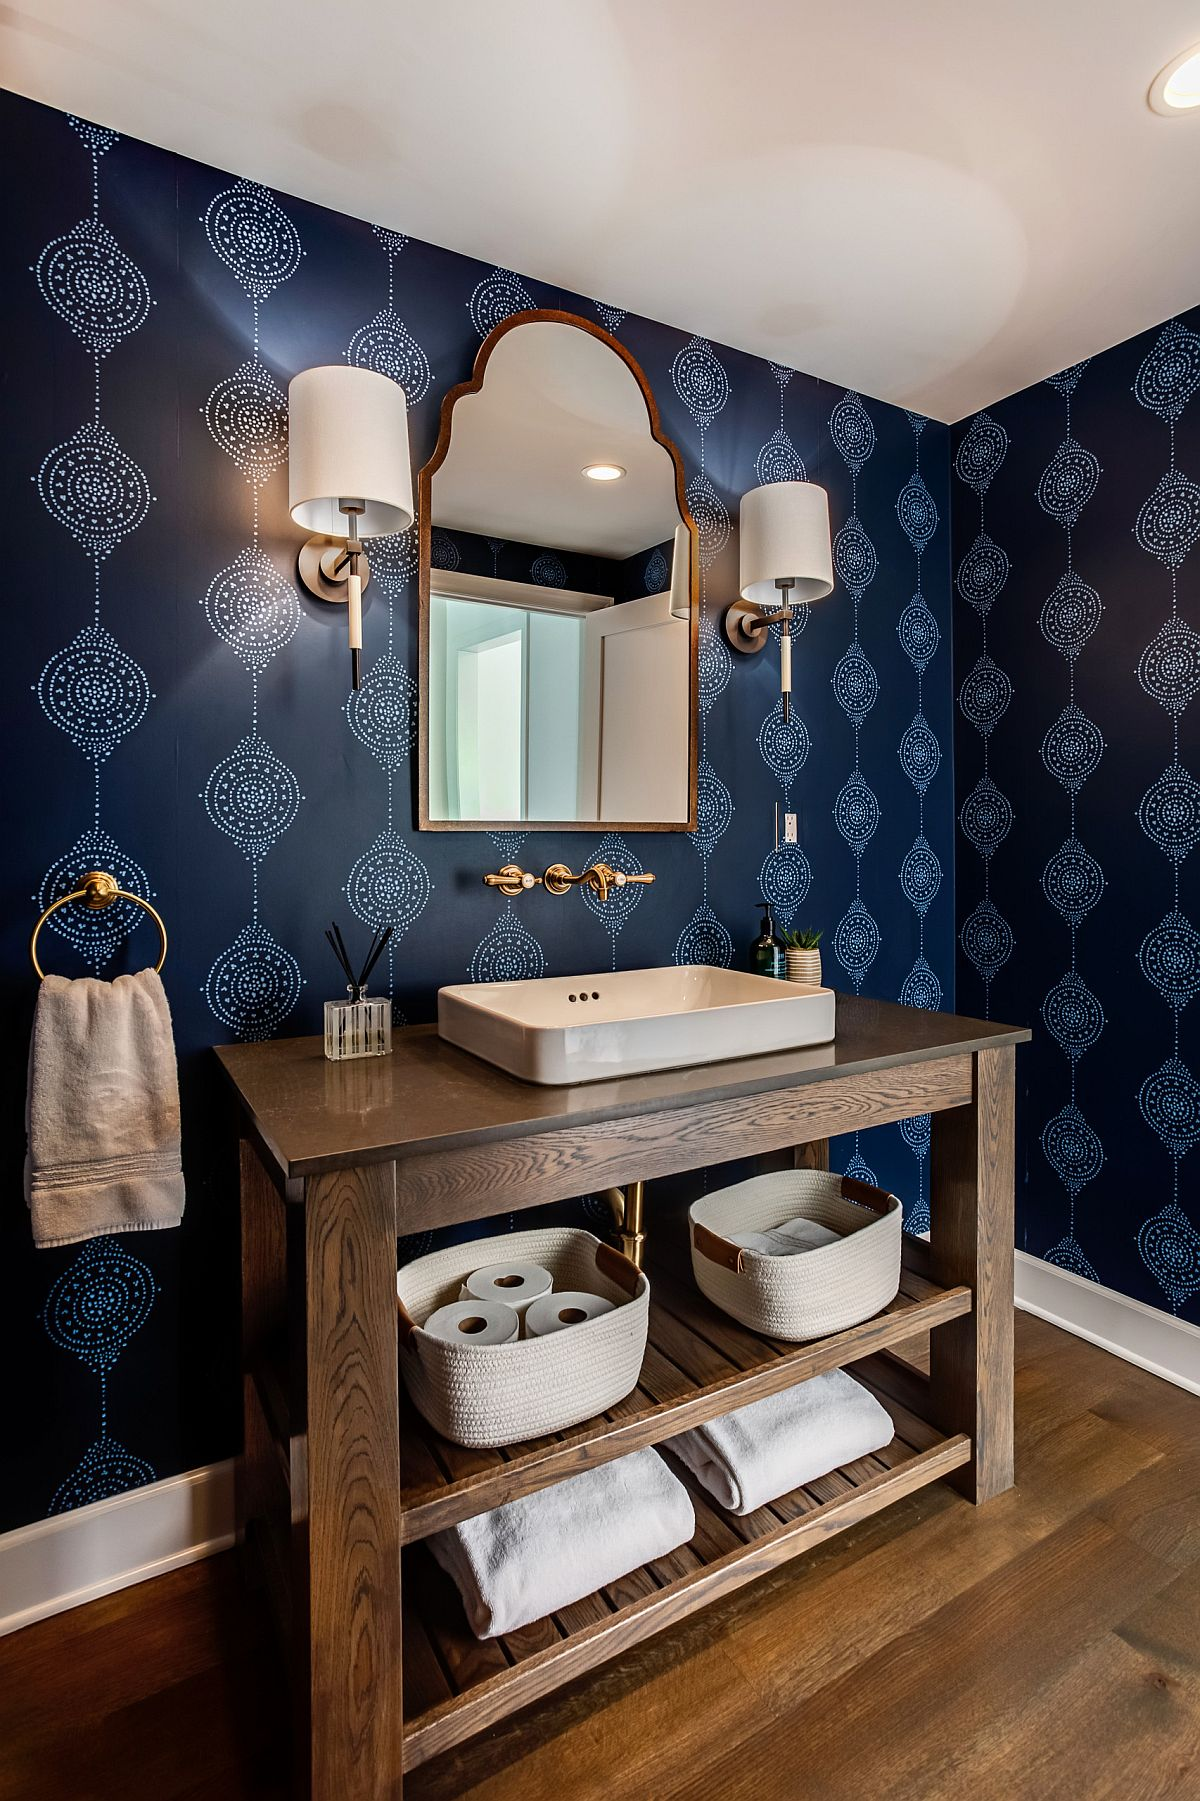 Gorgeous wallpaper in blue brings both color and pattern to this modern farmhouse powder room